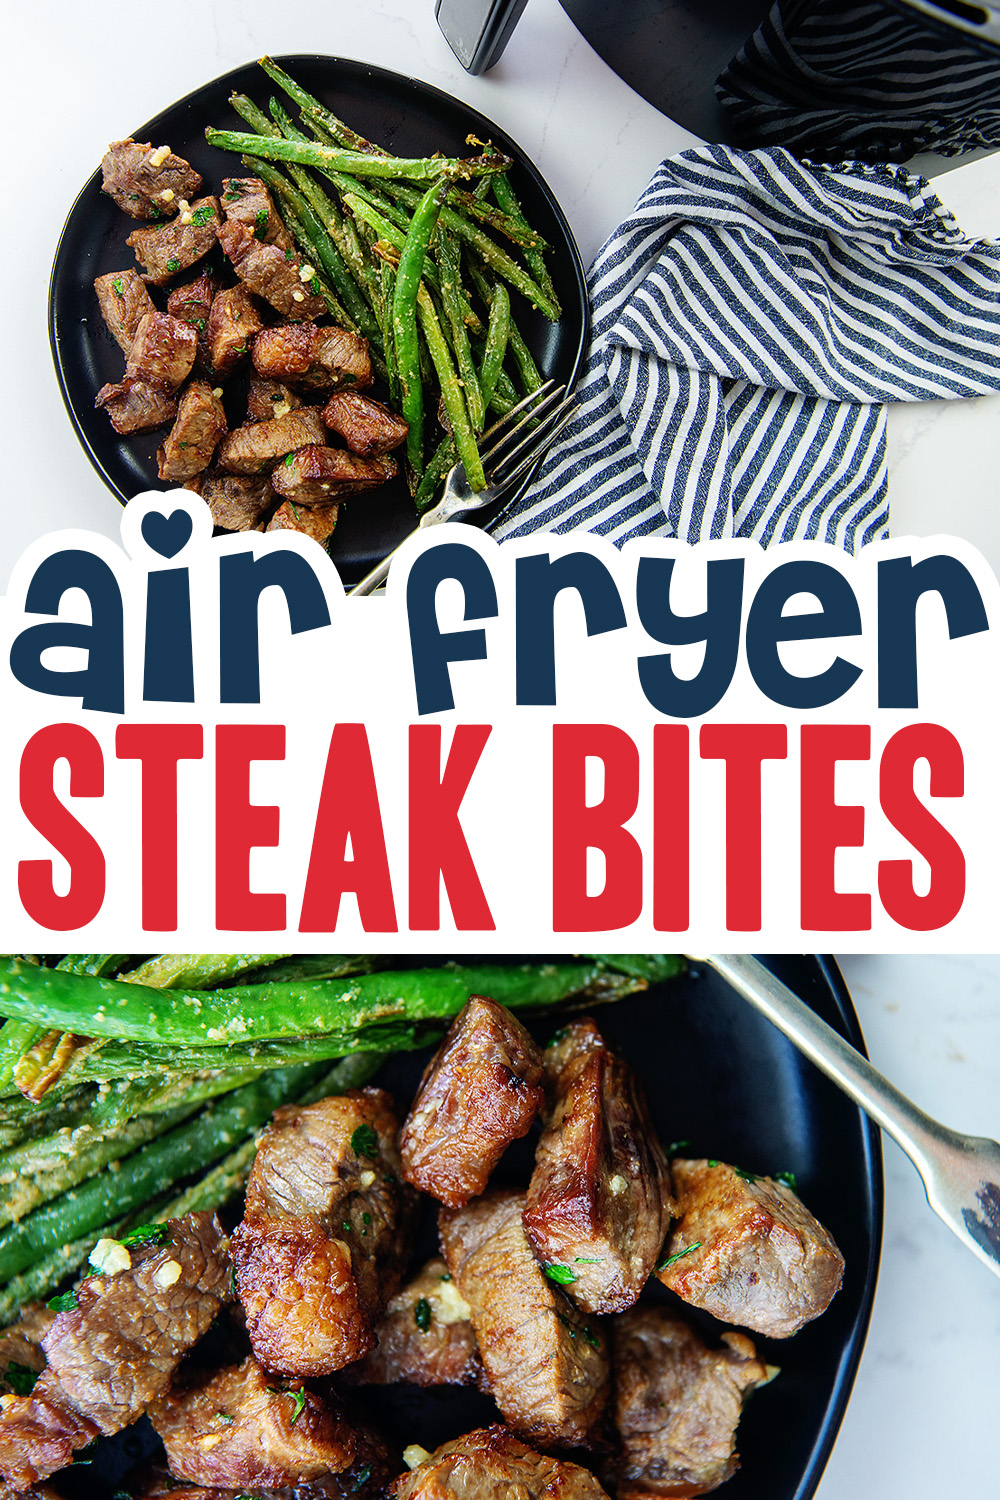 It is easy to cook your steak bites evenly in the air fryer!  The consistency of the meat and the texture of the steak is fantastic!